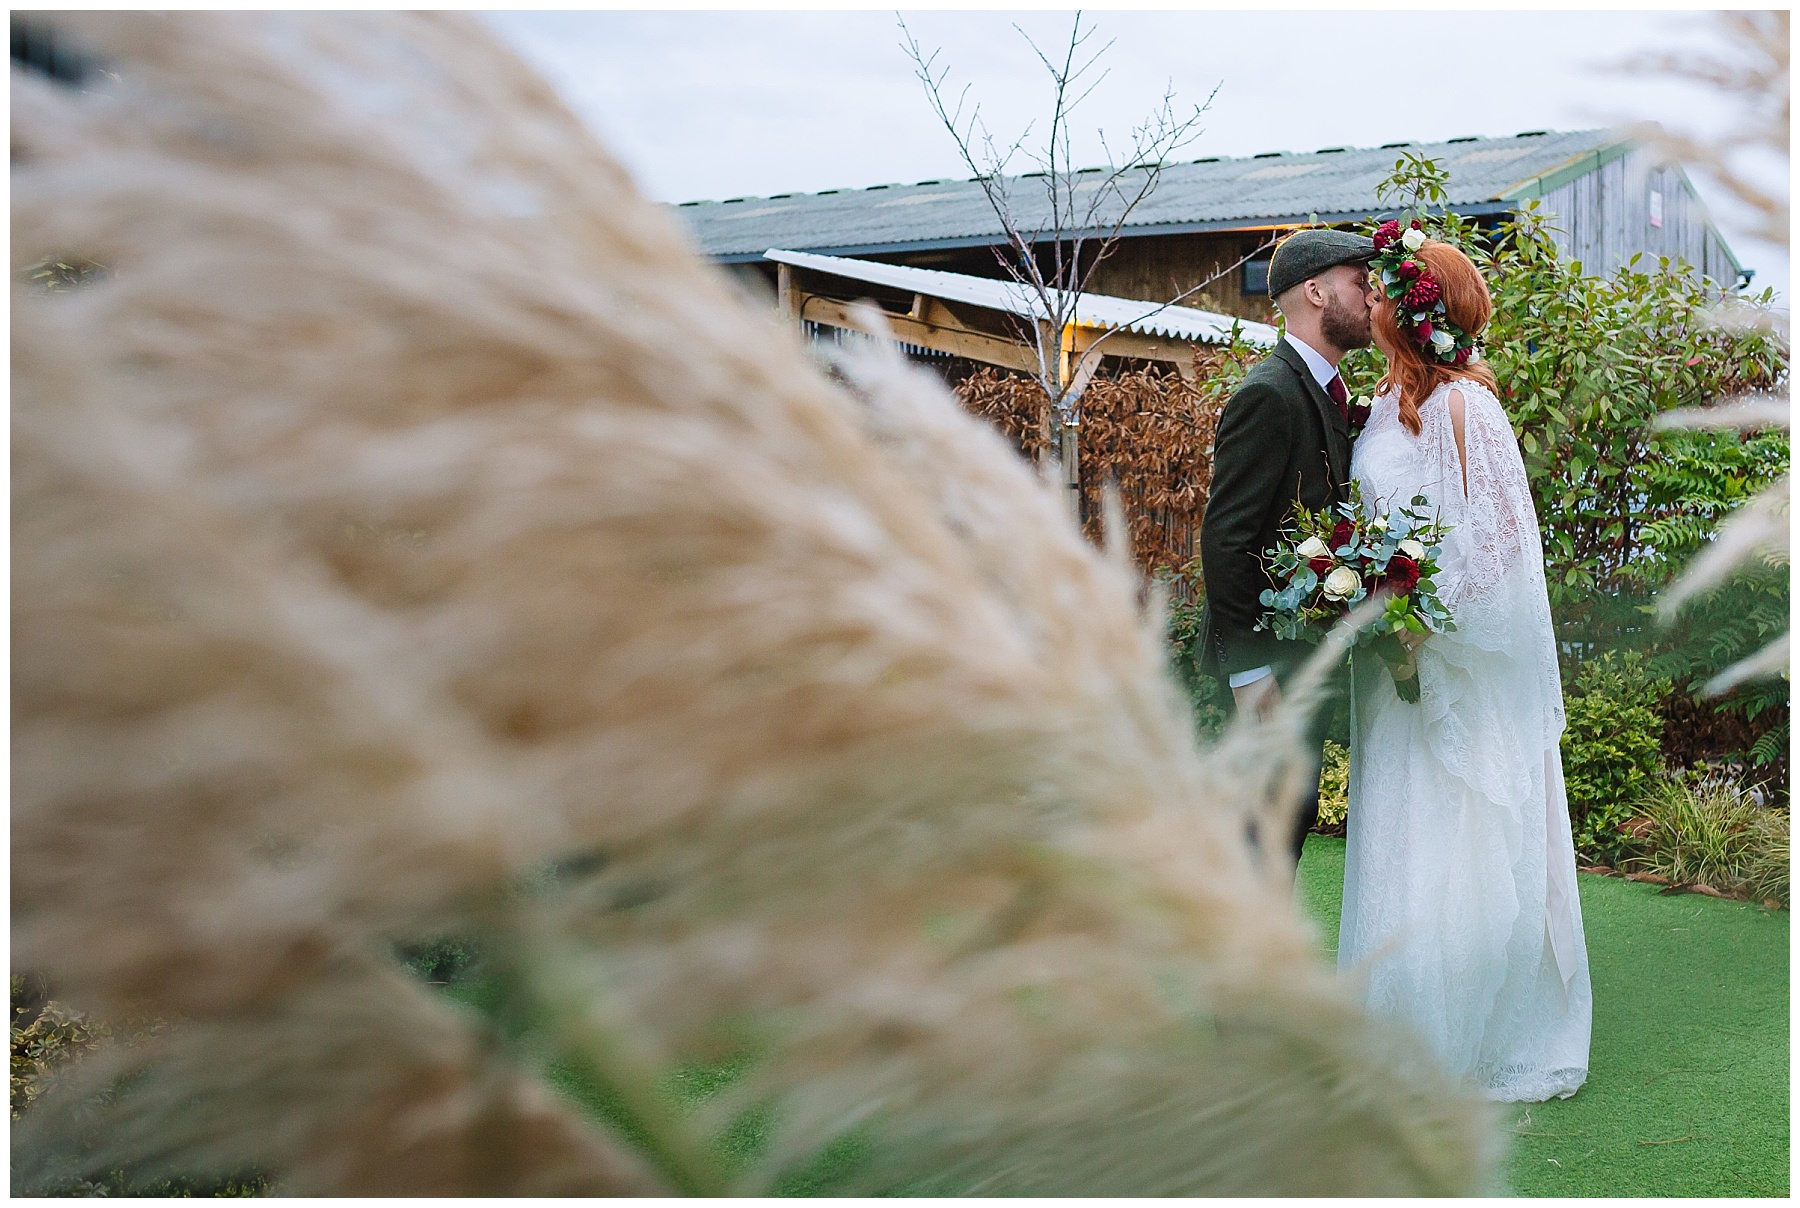 Kissing couple in the pampas grass